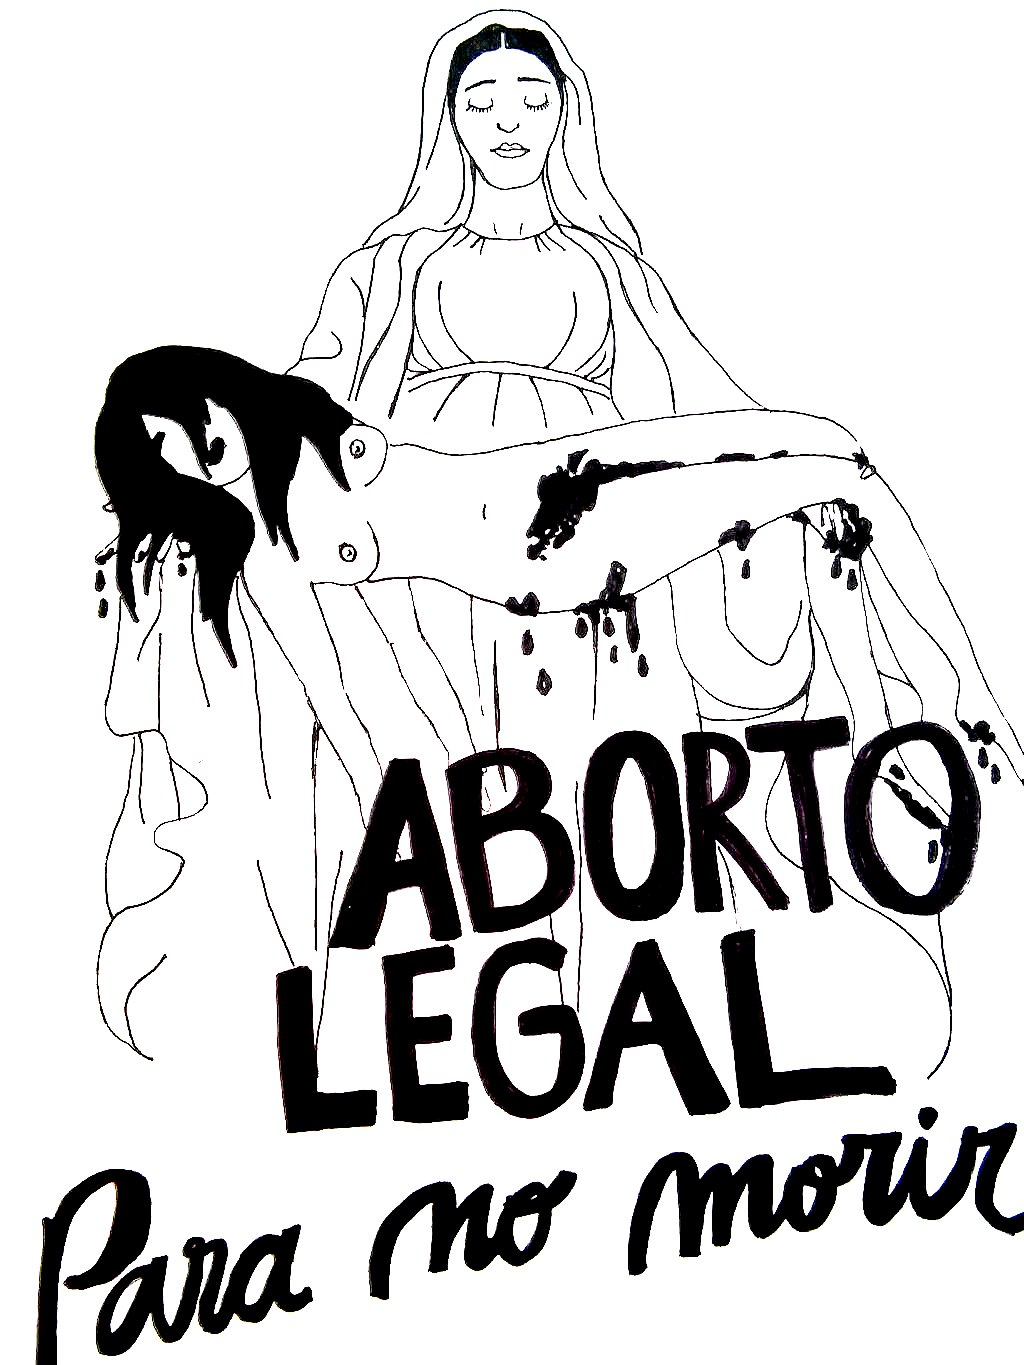 """Image of the Virgin Mary holding a woman's body. She is bleeding from between her legs and written in Spanish over the image it says """"Legal abortion so that we don't die."""""""